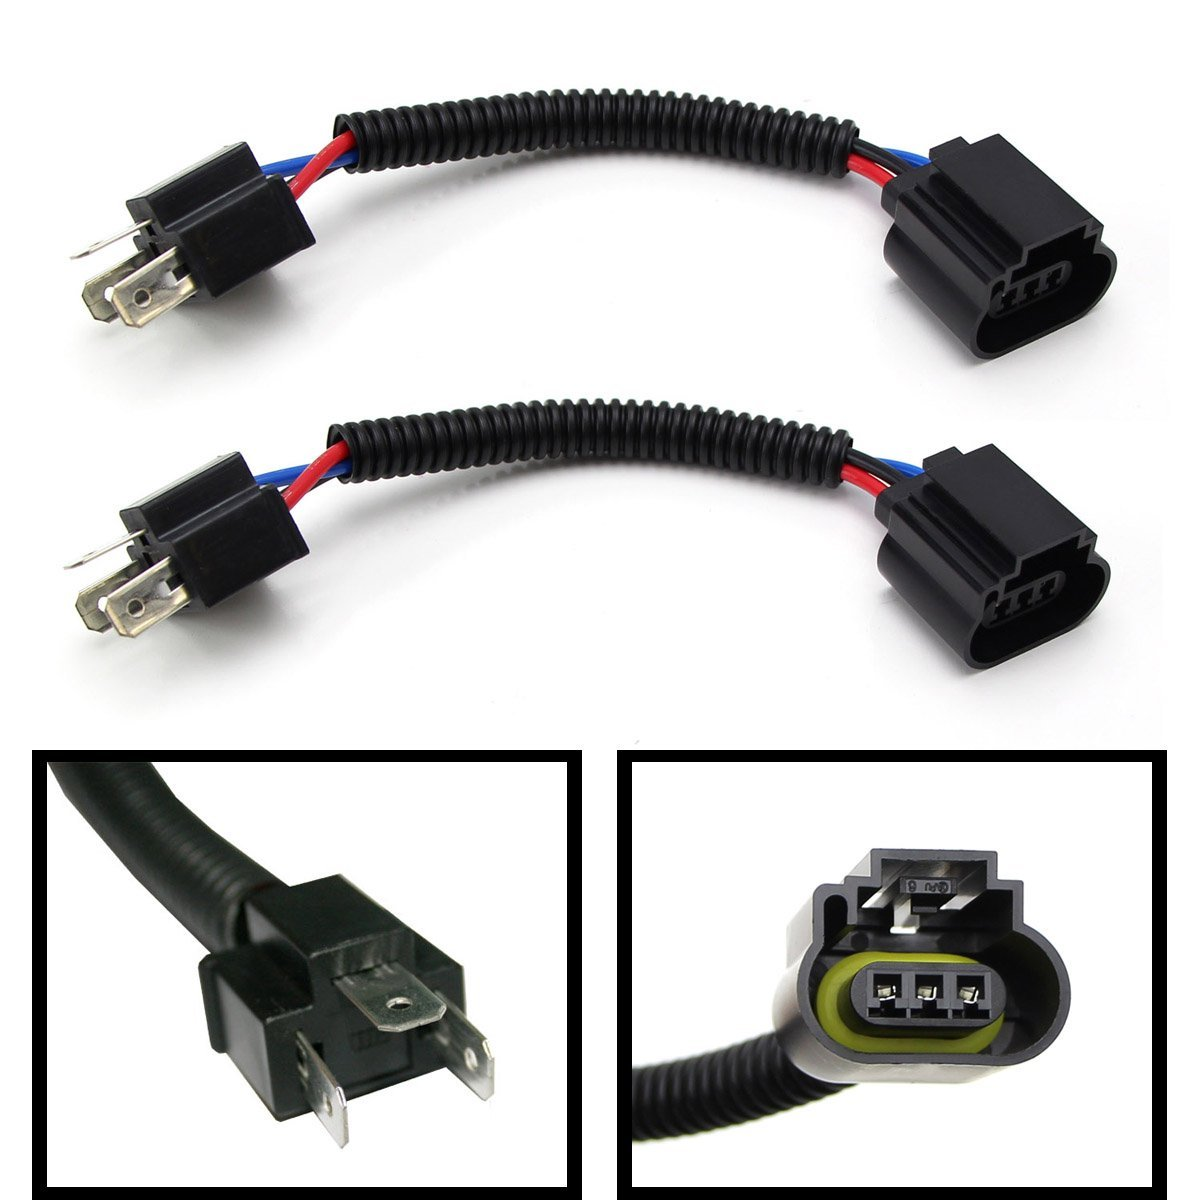 hight resolution of  2 ijdmtoy h4 9003 to h13 9008 pigtail wire wiring harness adapters for h4 h13 headlight conversion retrofit walmart com